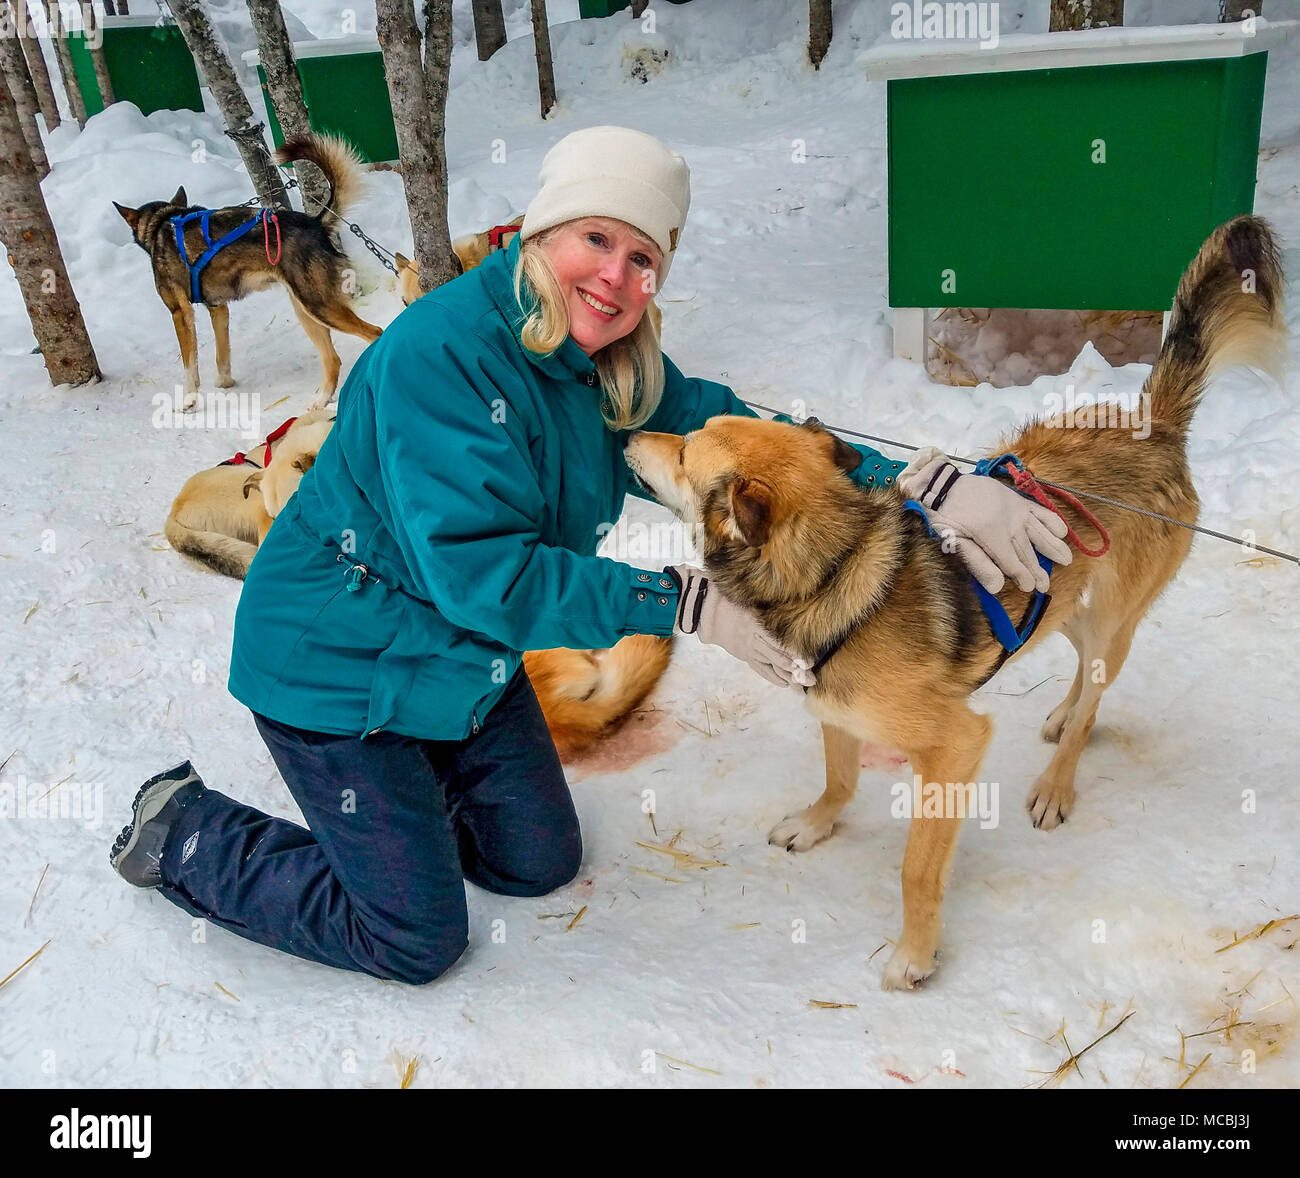 At the end of a tour with Mountain Man Sled Dog Adventures, guests get to pet the adult dogs and puppies. This socializes them. These are five-month-old pups. Most sled dogs are NOT Siberian Huskies but, rather are a crossbreed of many dogs that are lean and fast. The crossbreed is called Alaskan Husky. - Stock Image